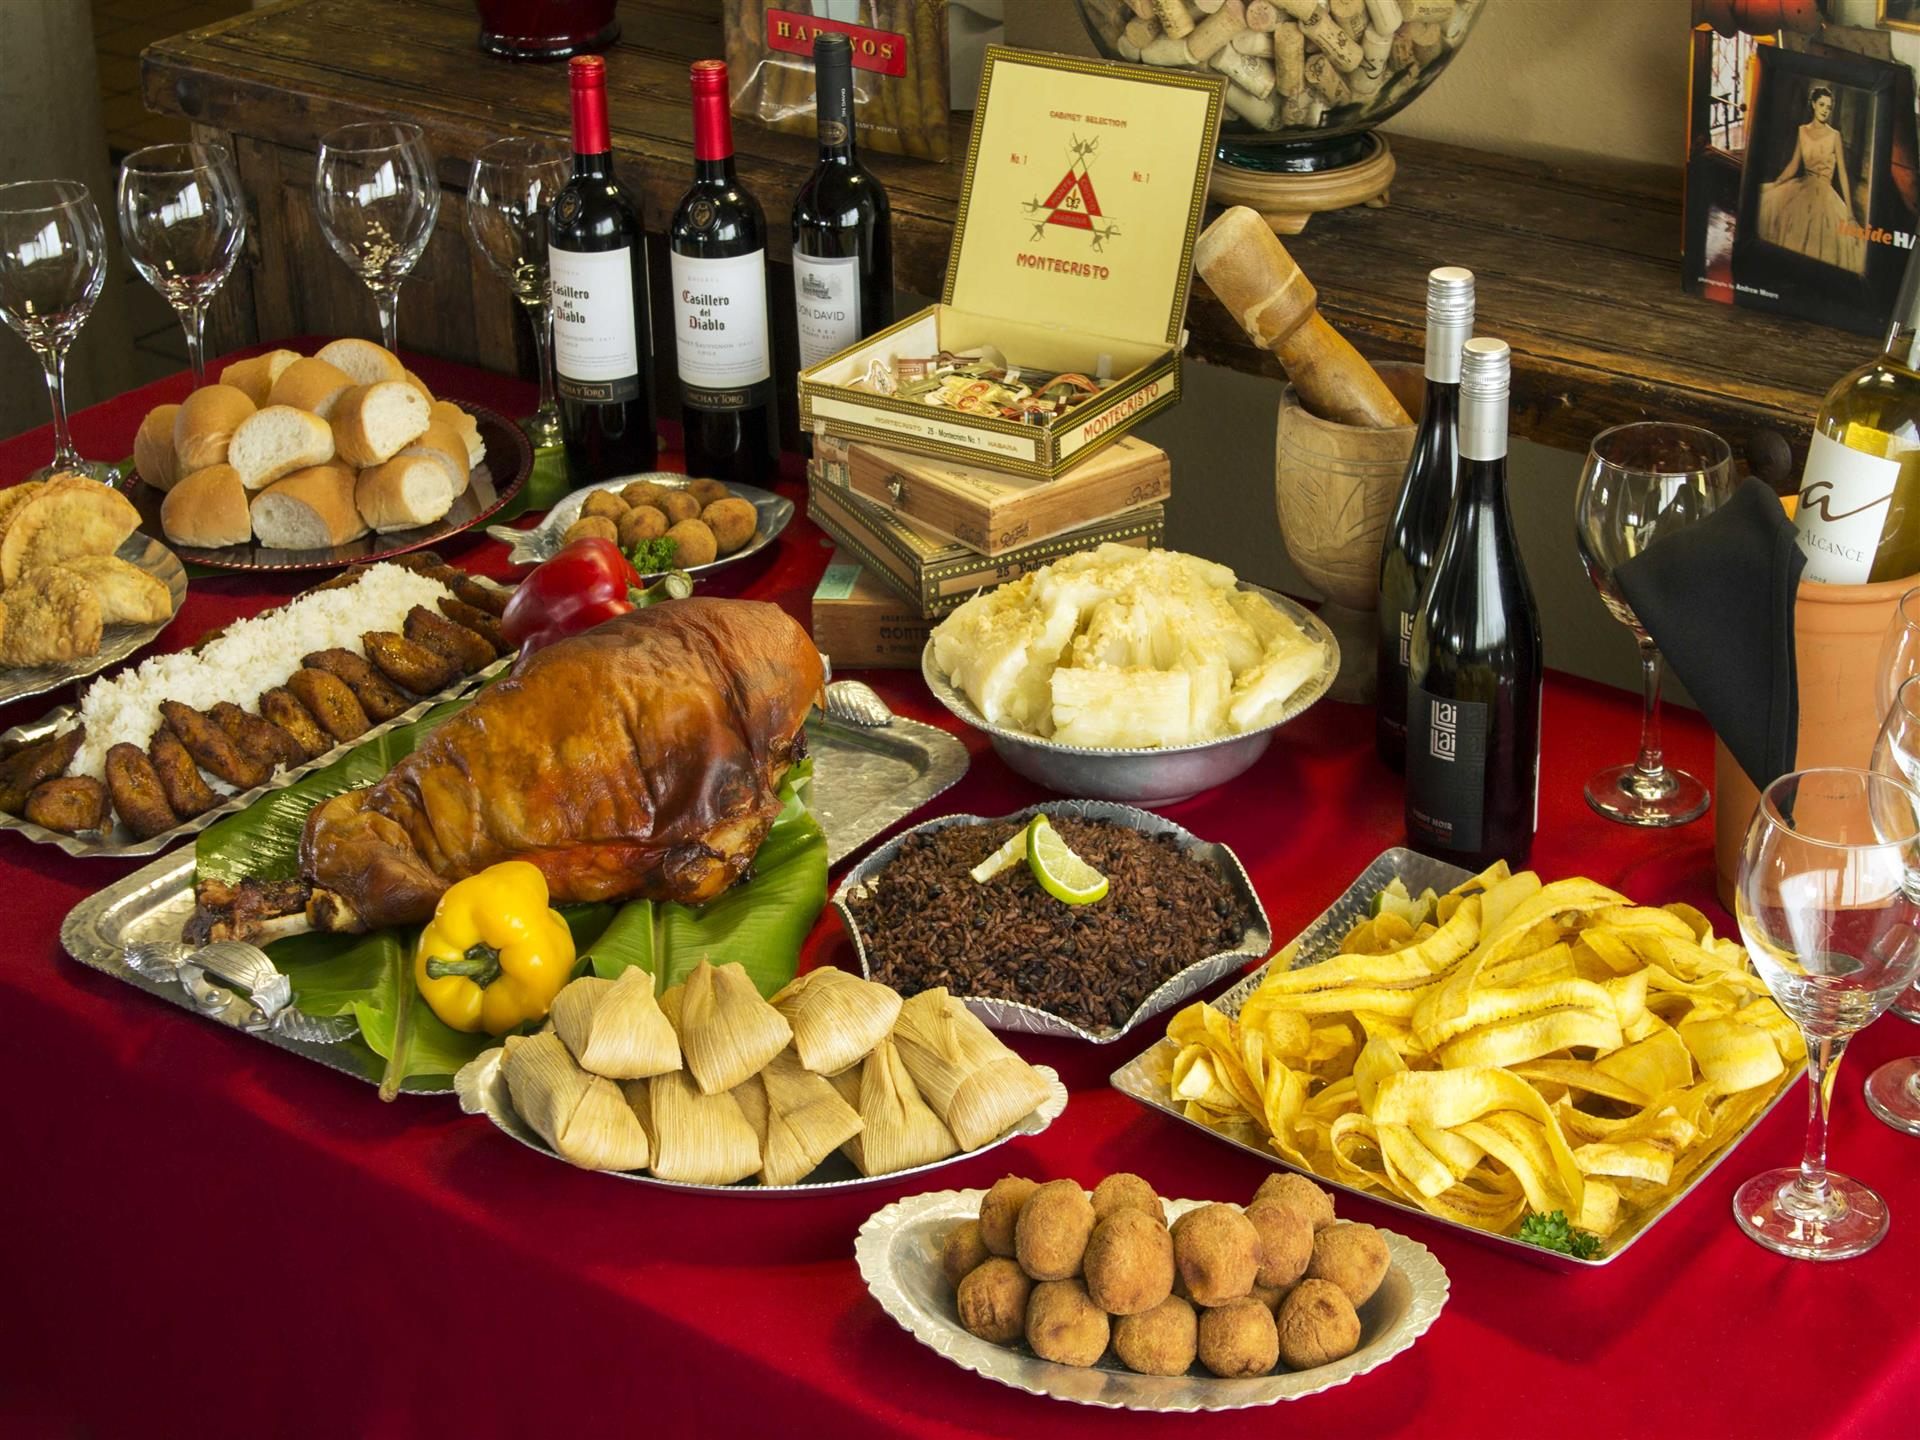 Catering display with assorted dishes of Cuban cuisine and bottles of wine with wine glasses